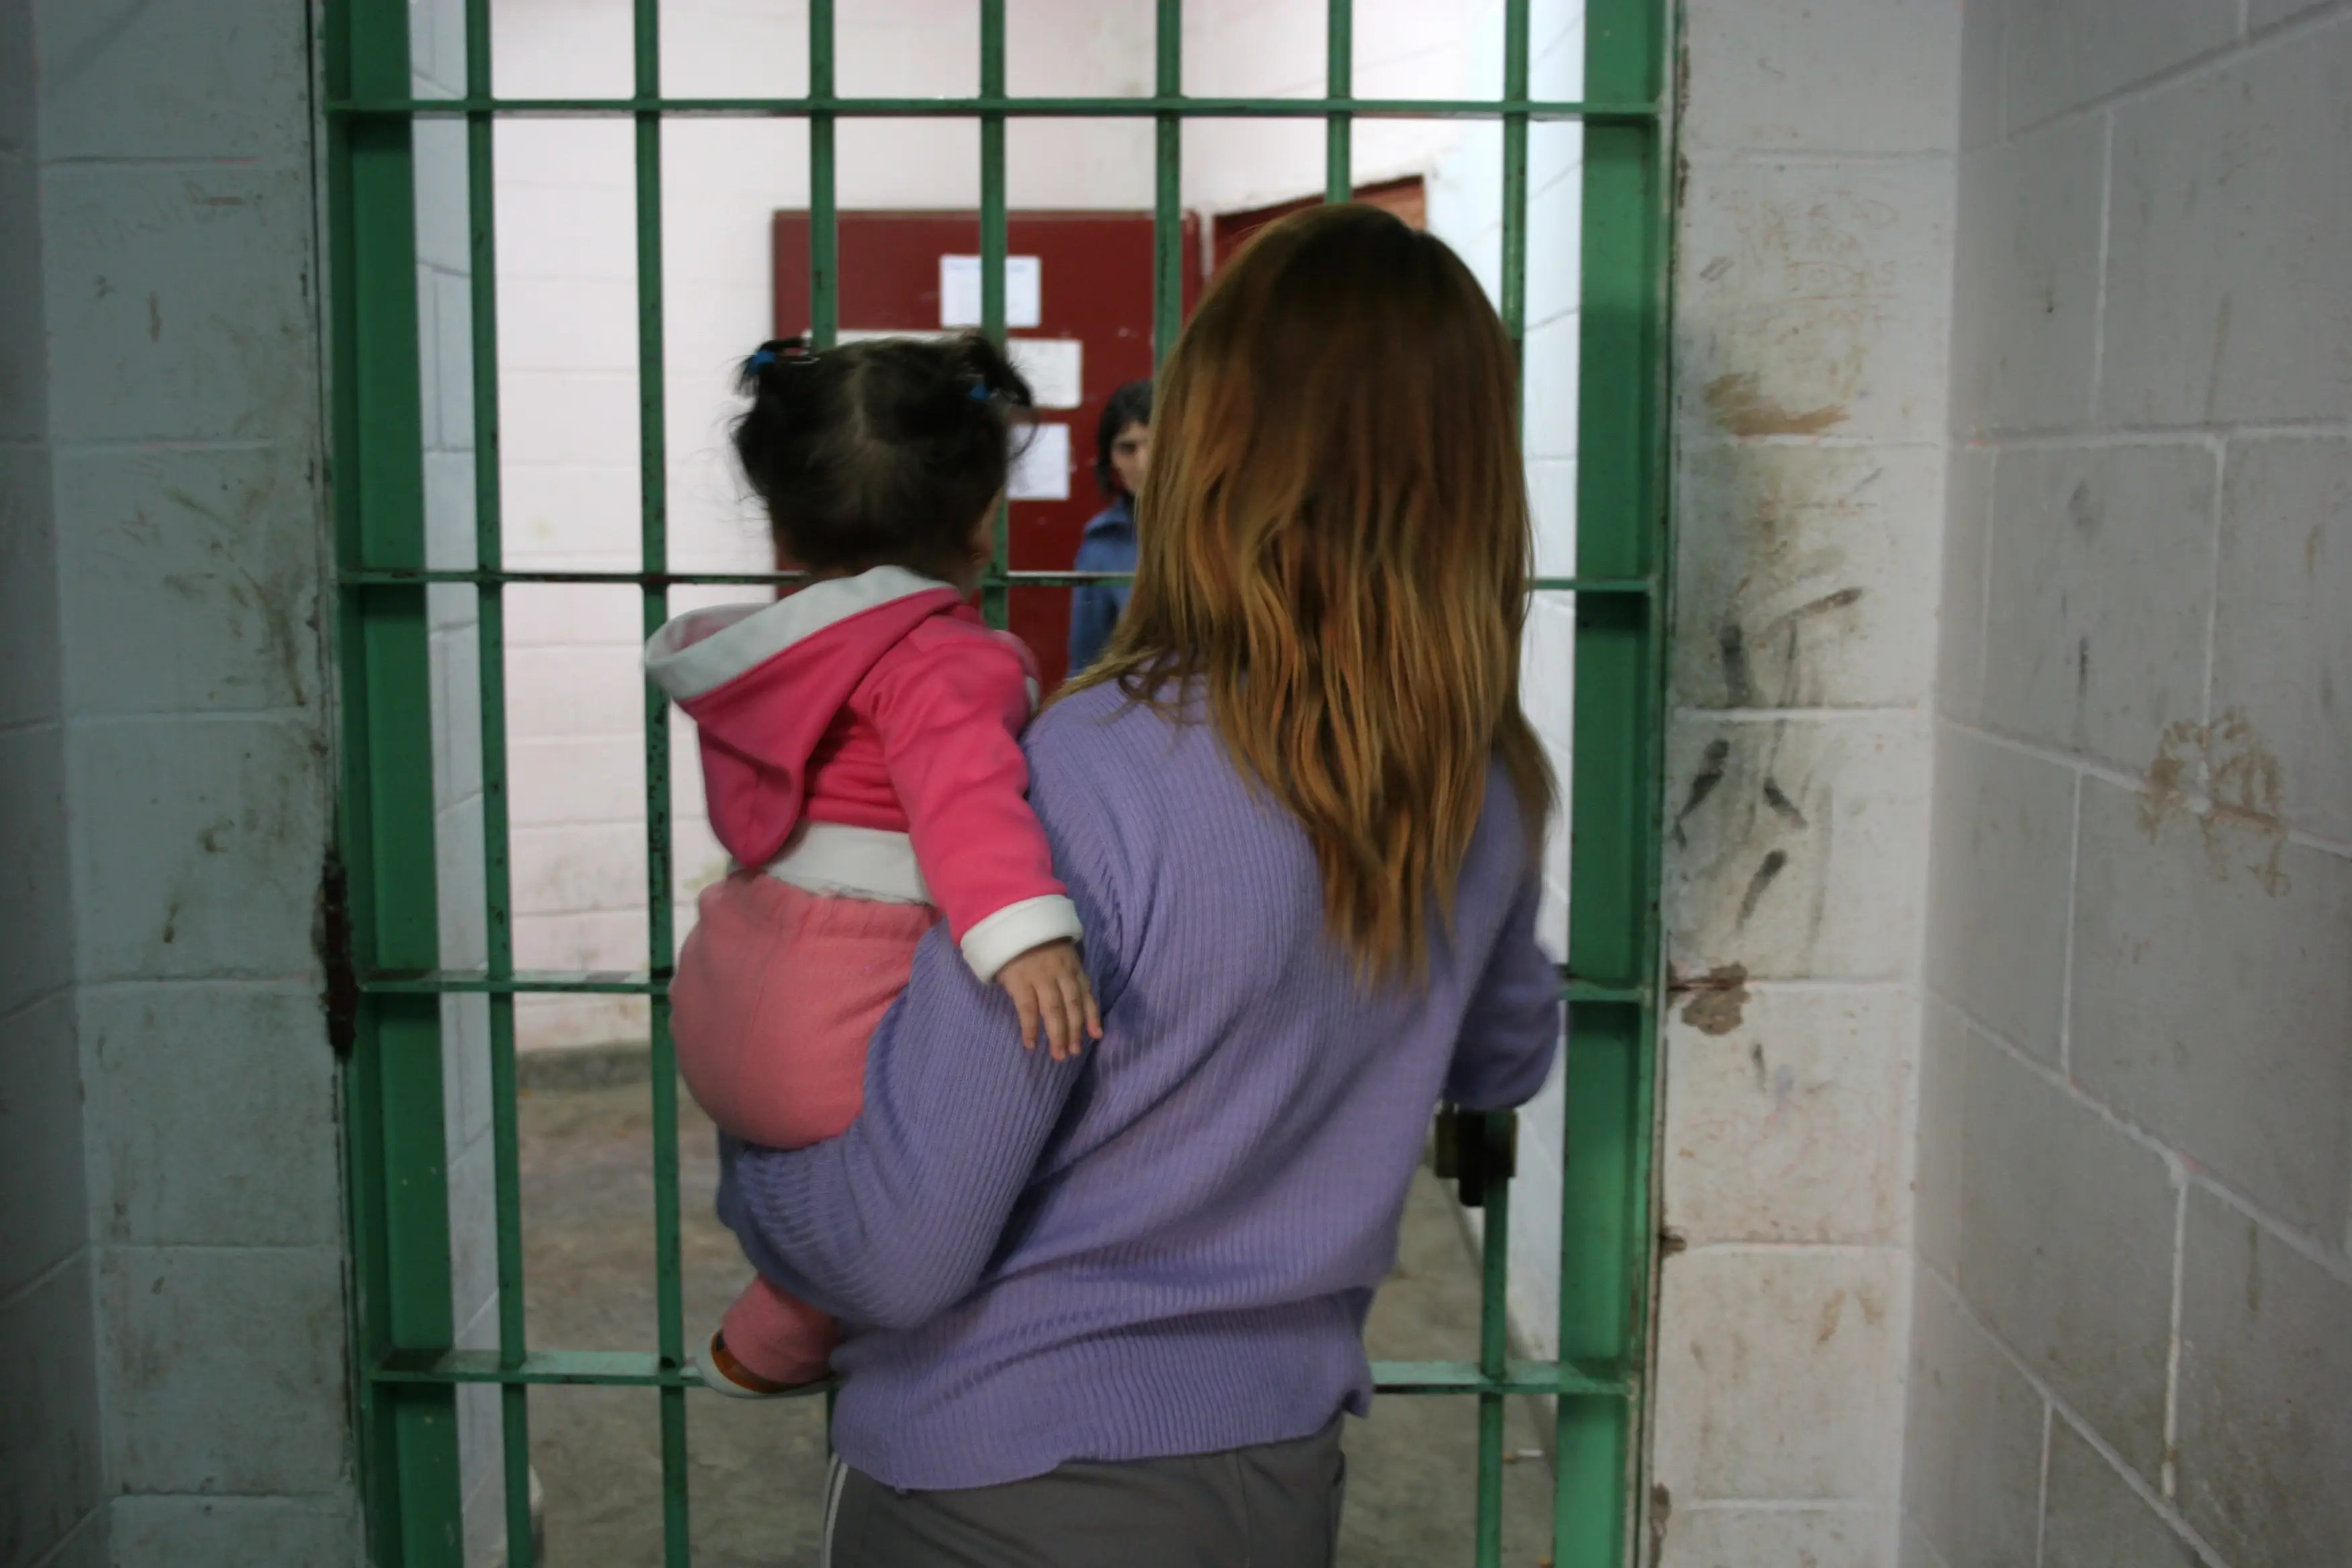 """In Argentina, the number of women in prison has soared by more than 200% in the last two decades. 85% were convicted of """"economic crimes,"""" like drug-related offenses or theft."""